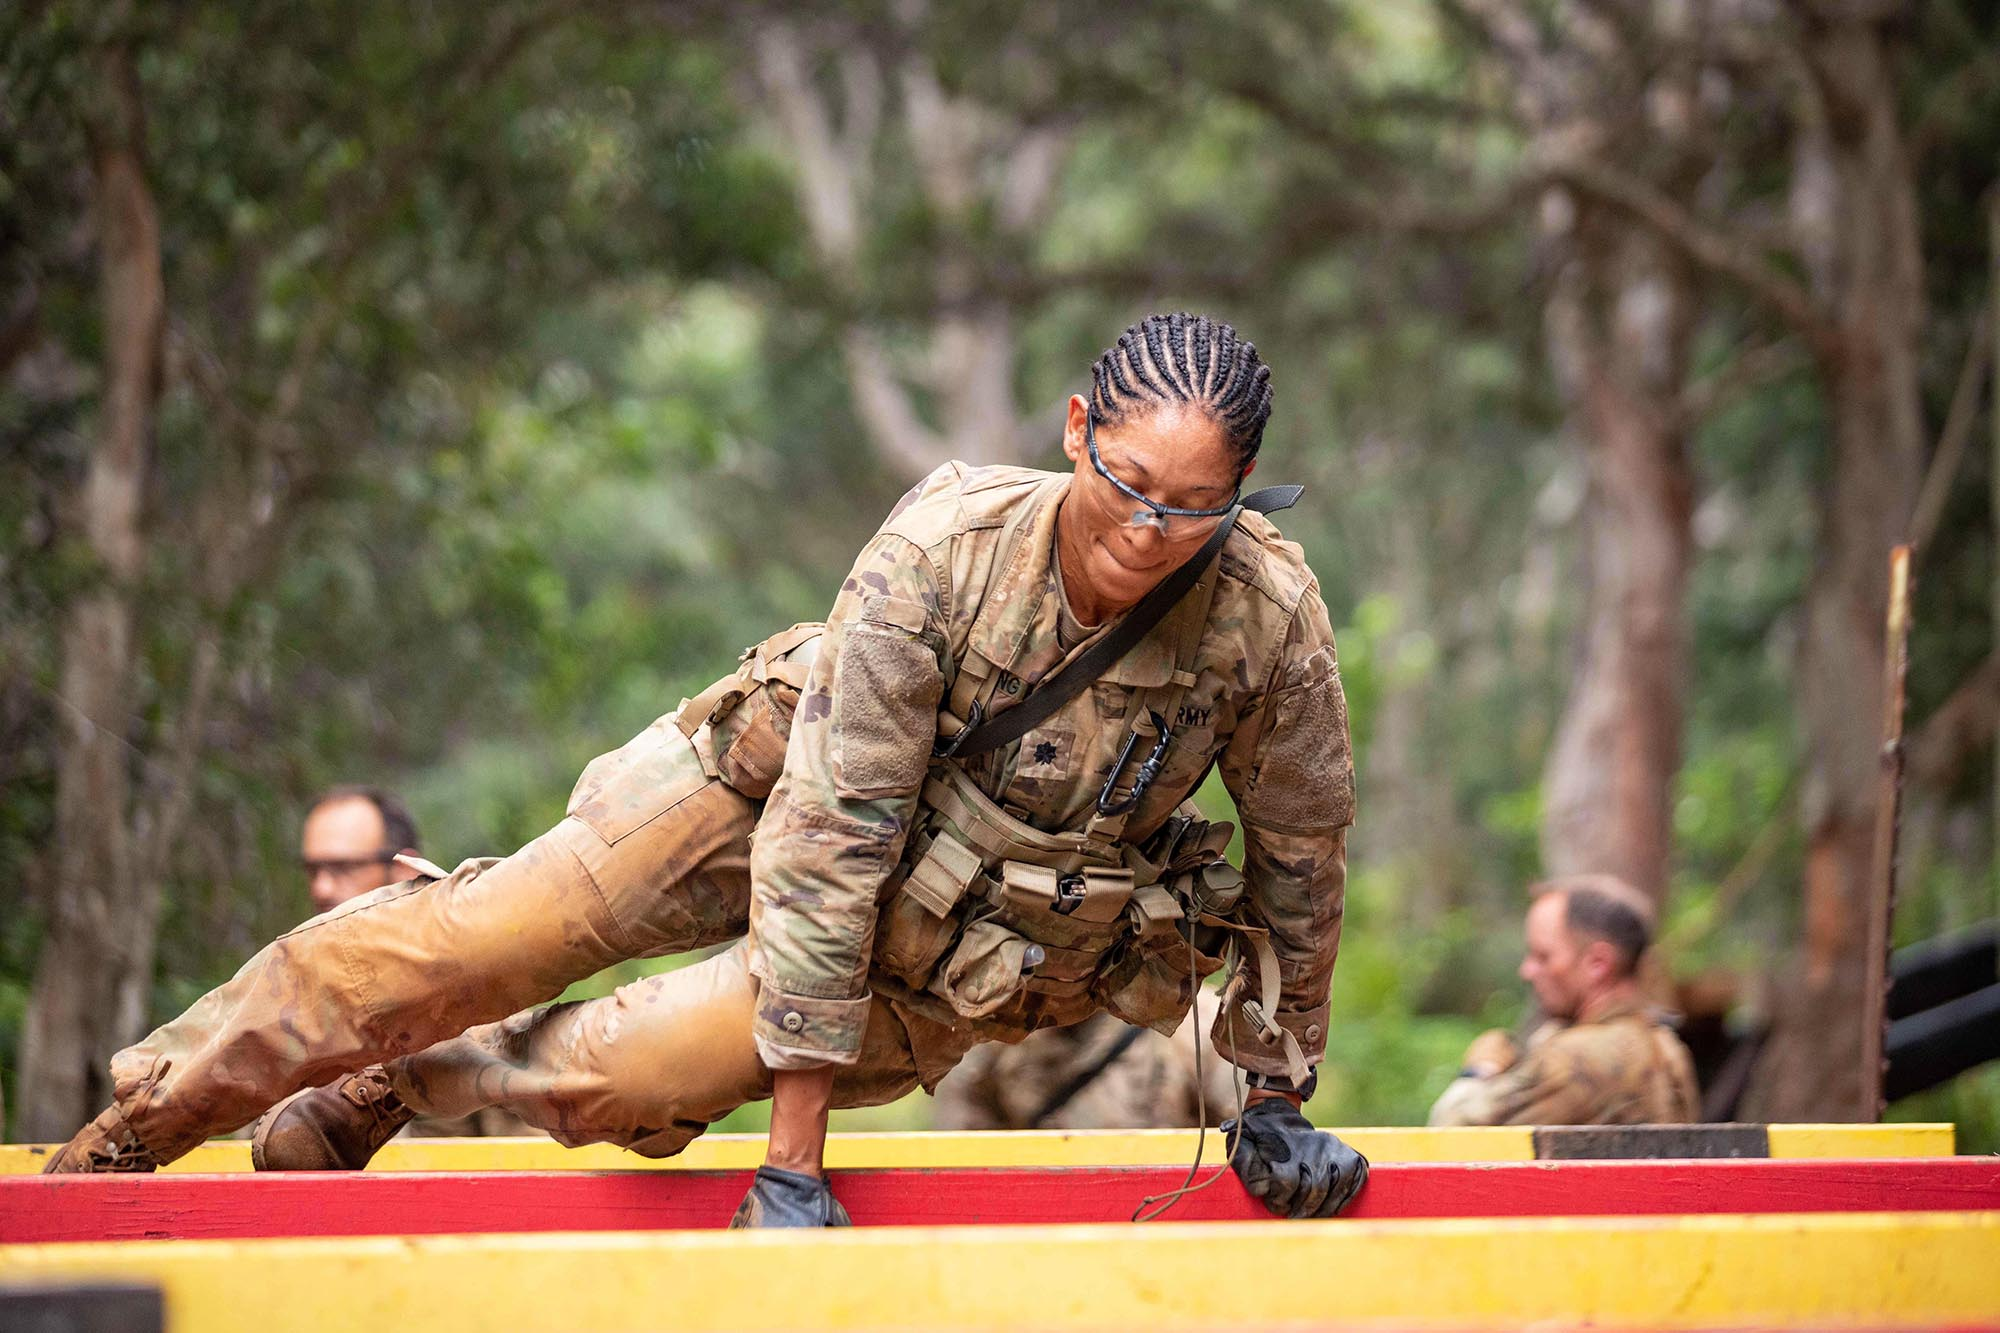 Lt. Col. Paula Young, Brigade Surgeon, 25th Infantry Division Sustainment Brigade, hurdles over an obstacle during the Green Mile, a physical endurance course that concludes the final week of Jungle Operations Training Course at East Range, Hawaii, on Oct. 1, 2020. (1st Lt. Angelo Mejia/Army)